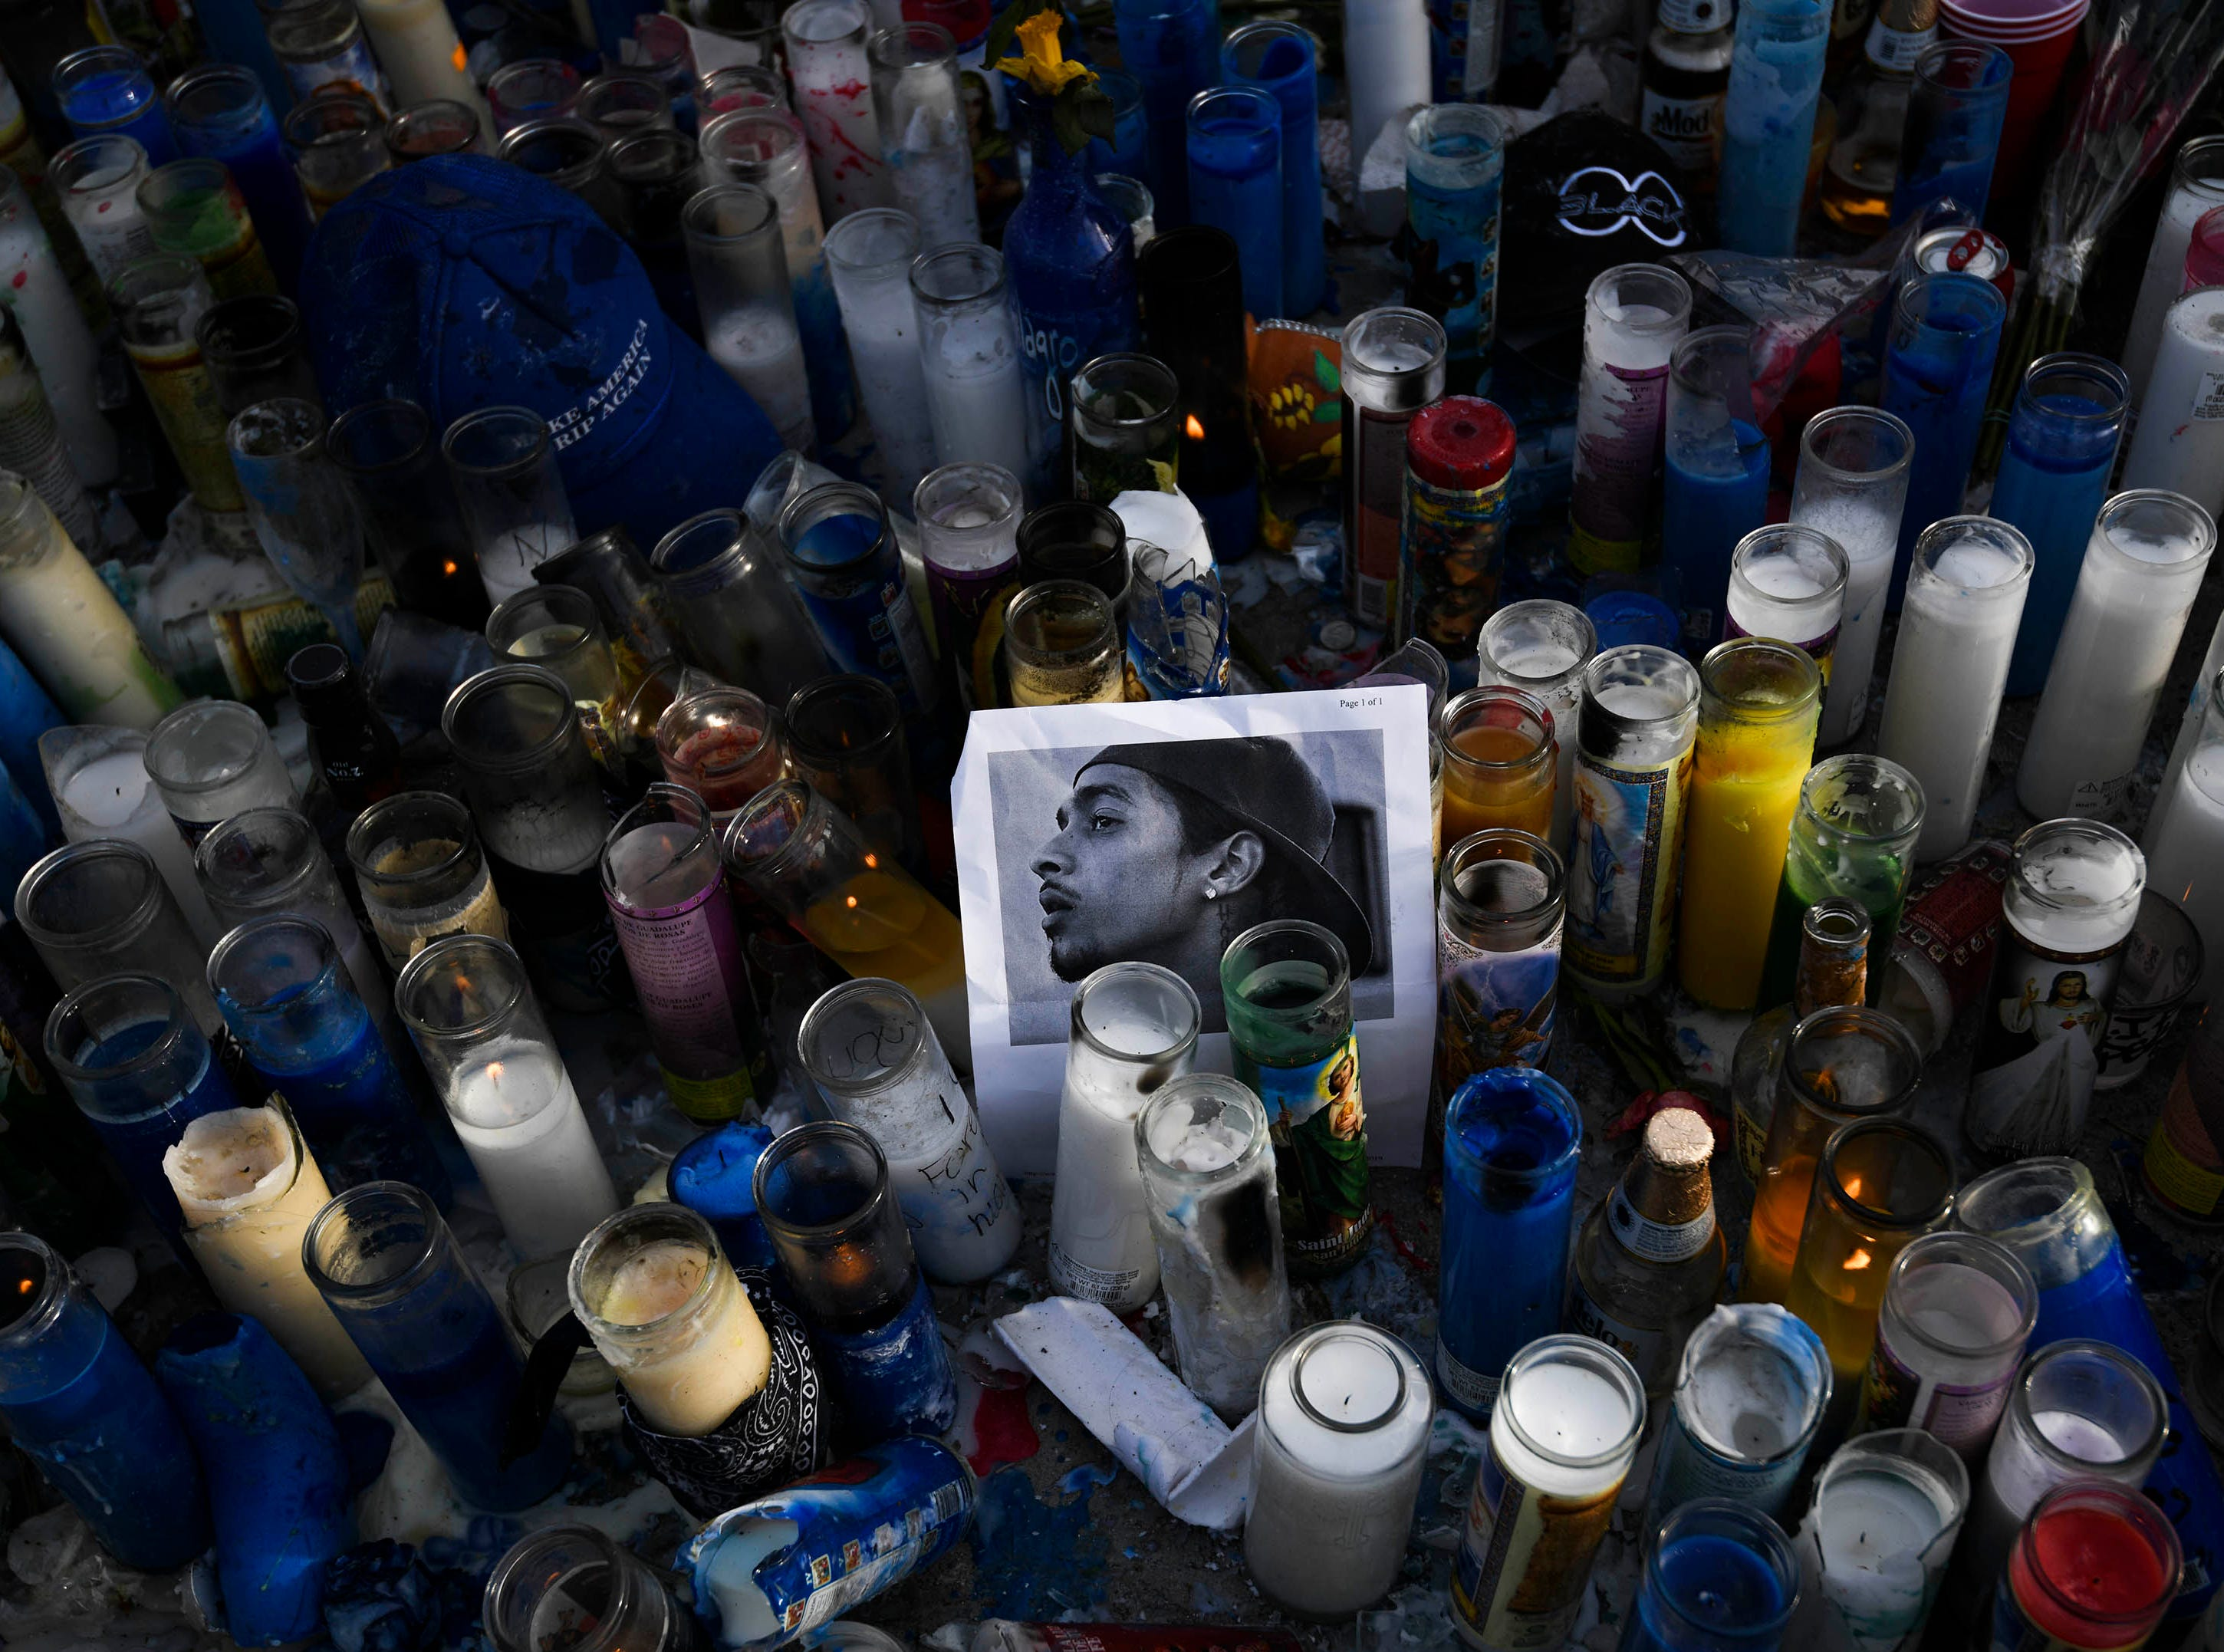 Mourners pay their respects to Nipsey Hussle near his clothing store on April 1, 2019 in Los Angeles. Hussle, a 33-year-old rapper, whose real name was Ermias Asghedom, was shot and killed outside the store on Sunday March 31, 2019.